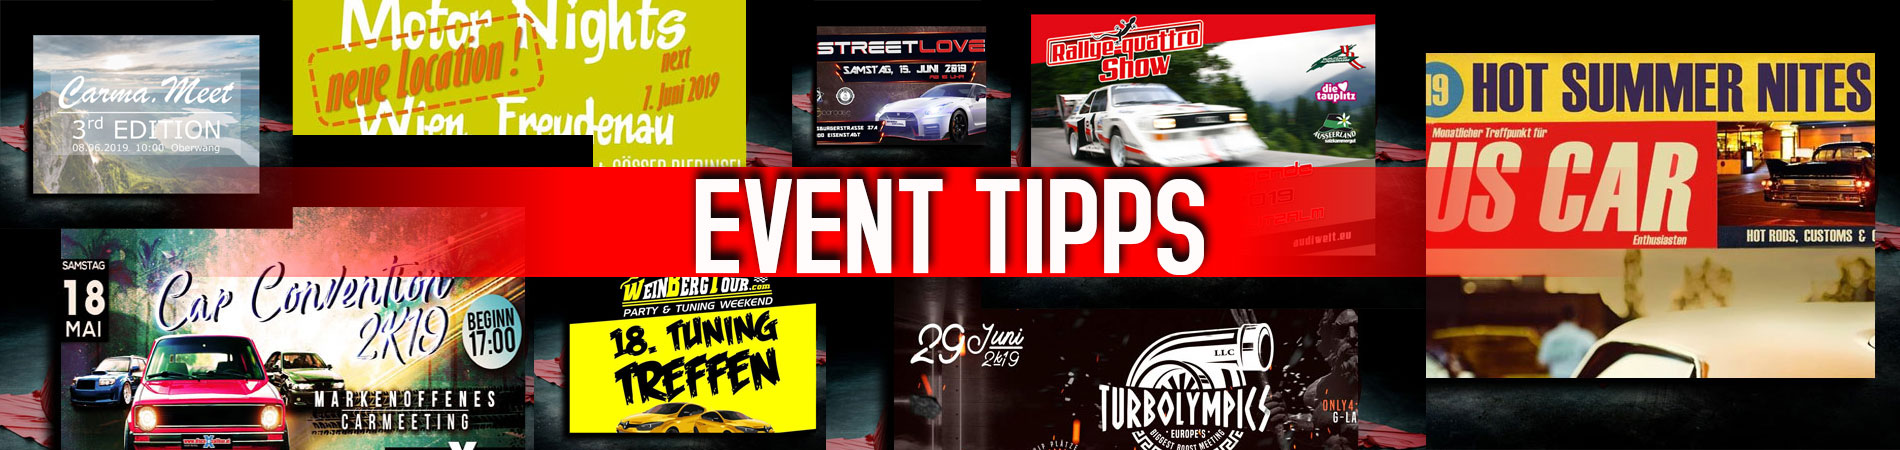 header-eventtipps